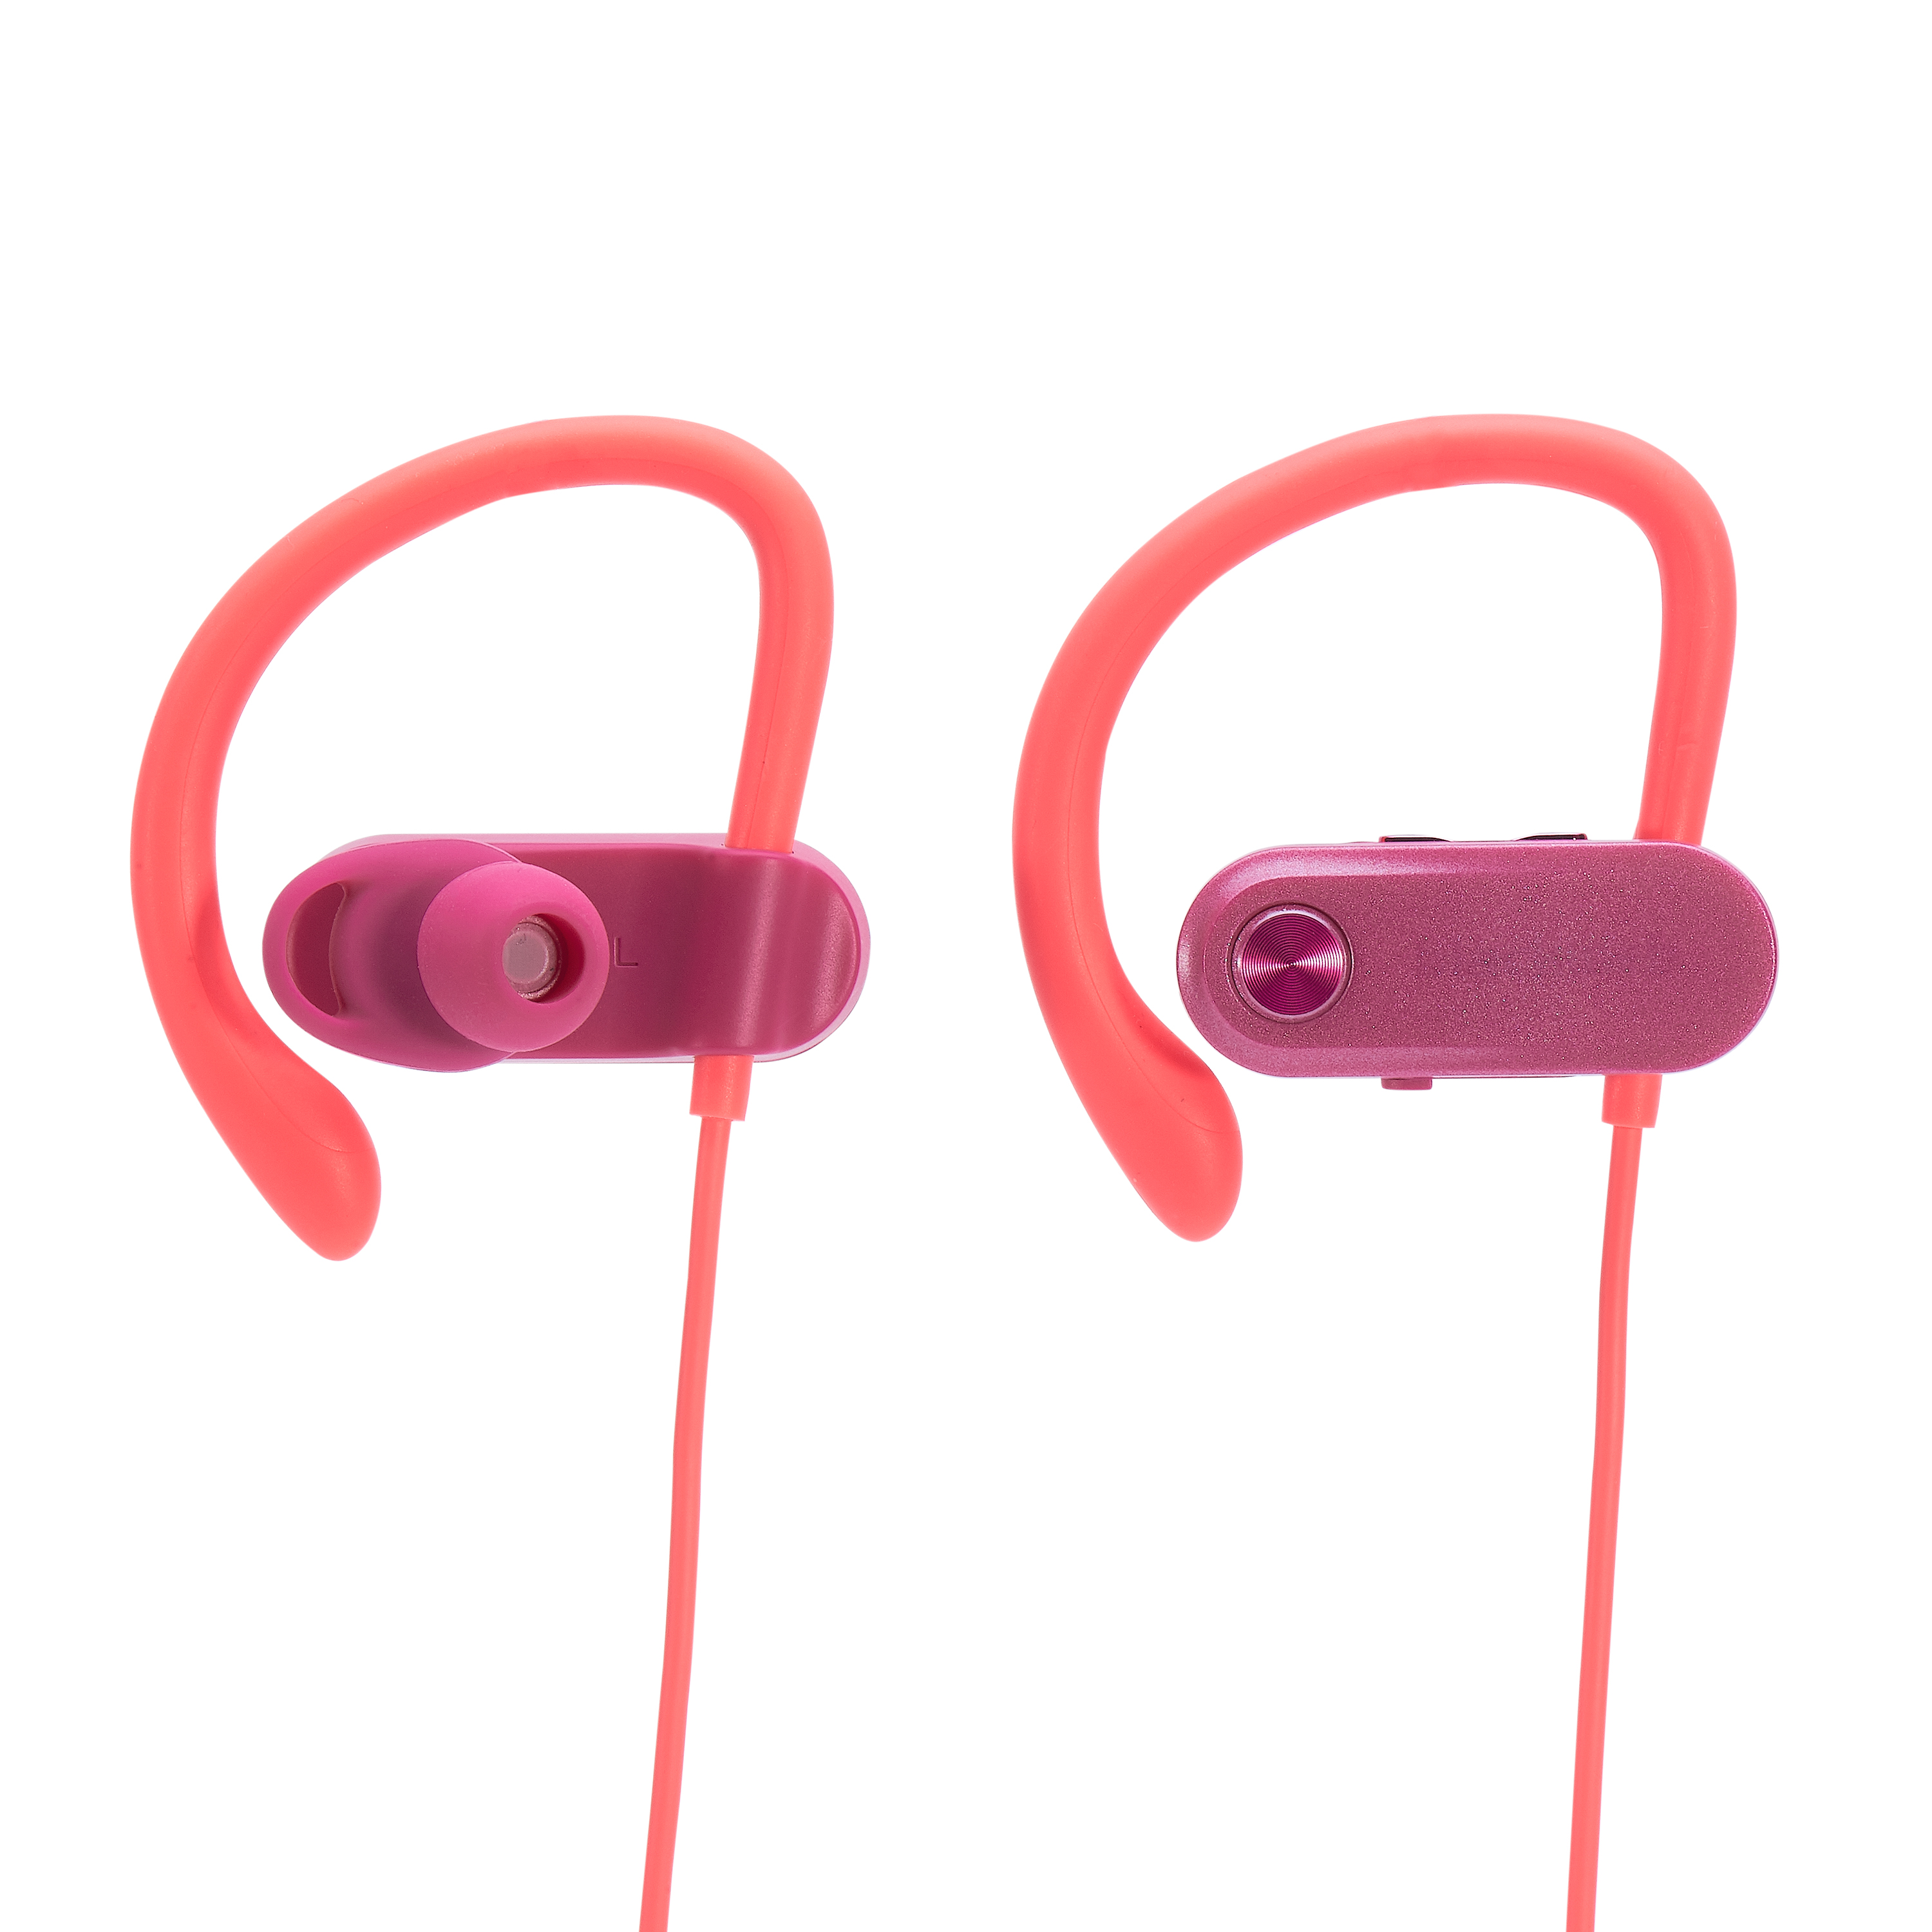 Blackweb Over The Ear Sport Bluetooth Headphones And Built In Microphone For Hands Free Calling Multiple Colors Walmart Com Walmart Com